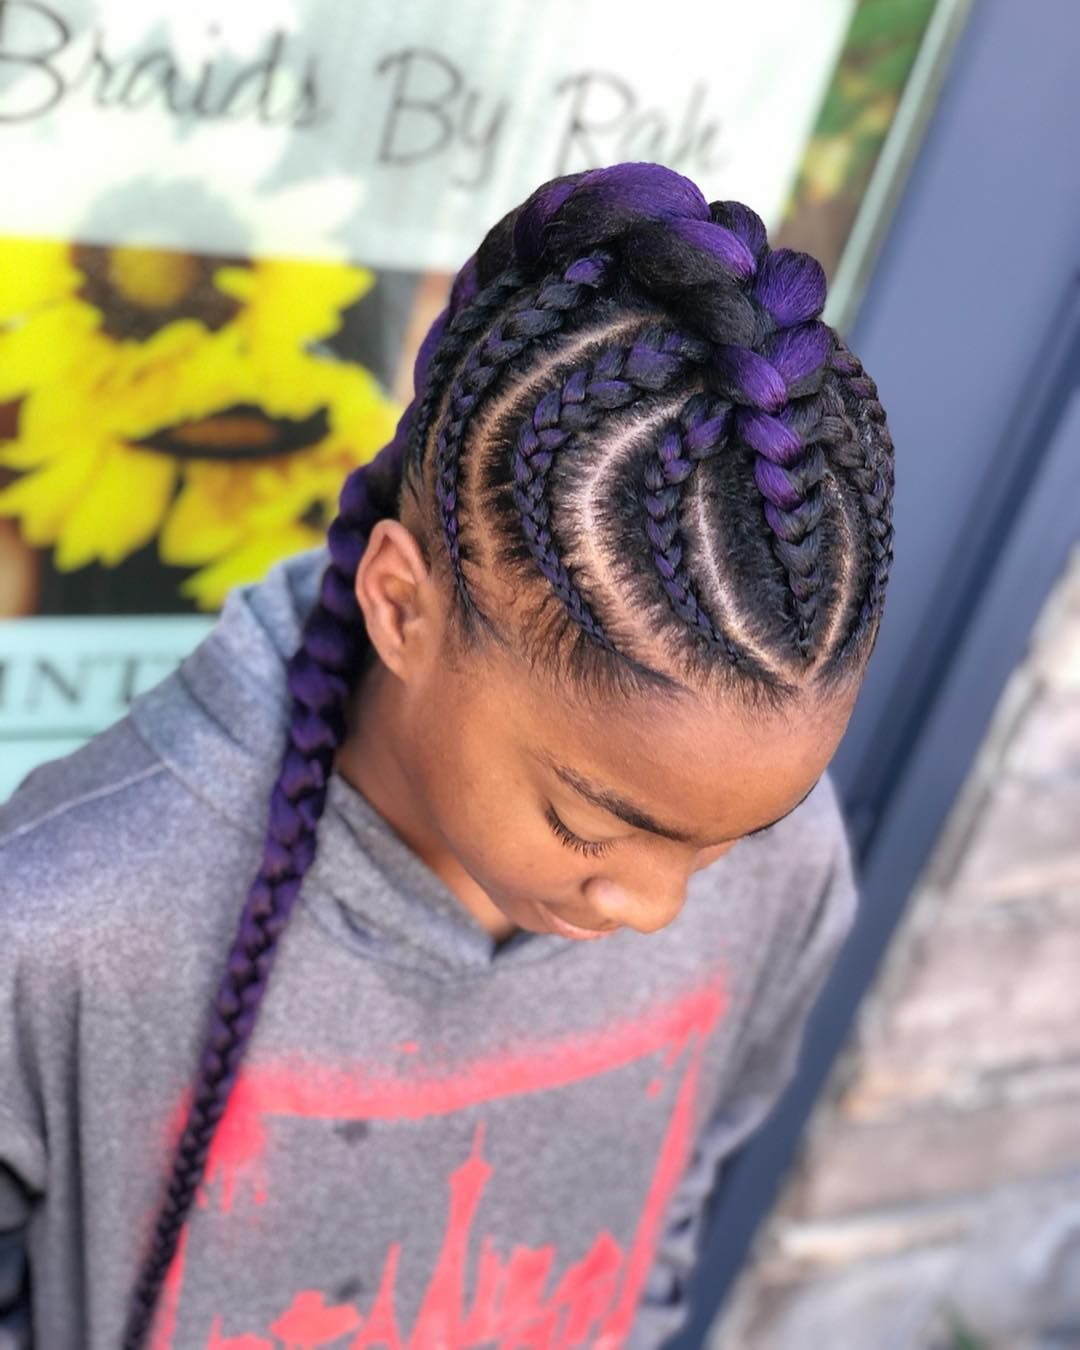 Image may contain: one or more people | Braid styles, Cornrows styles, Braids for black hair